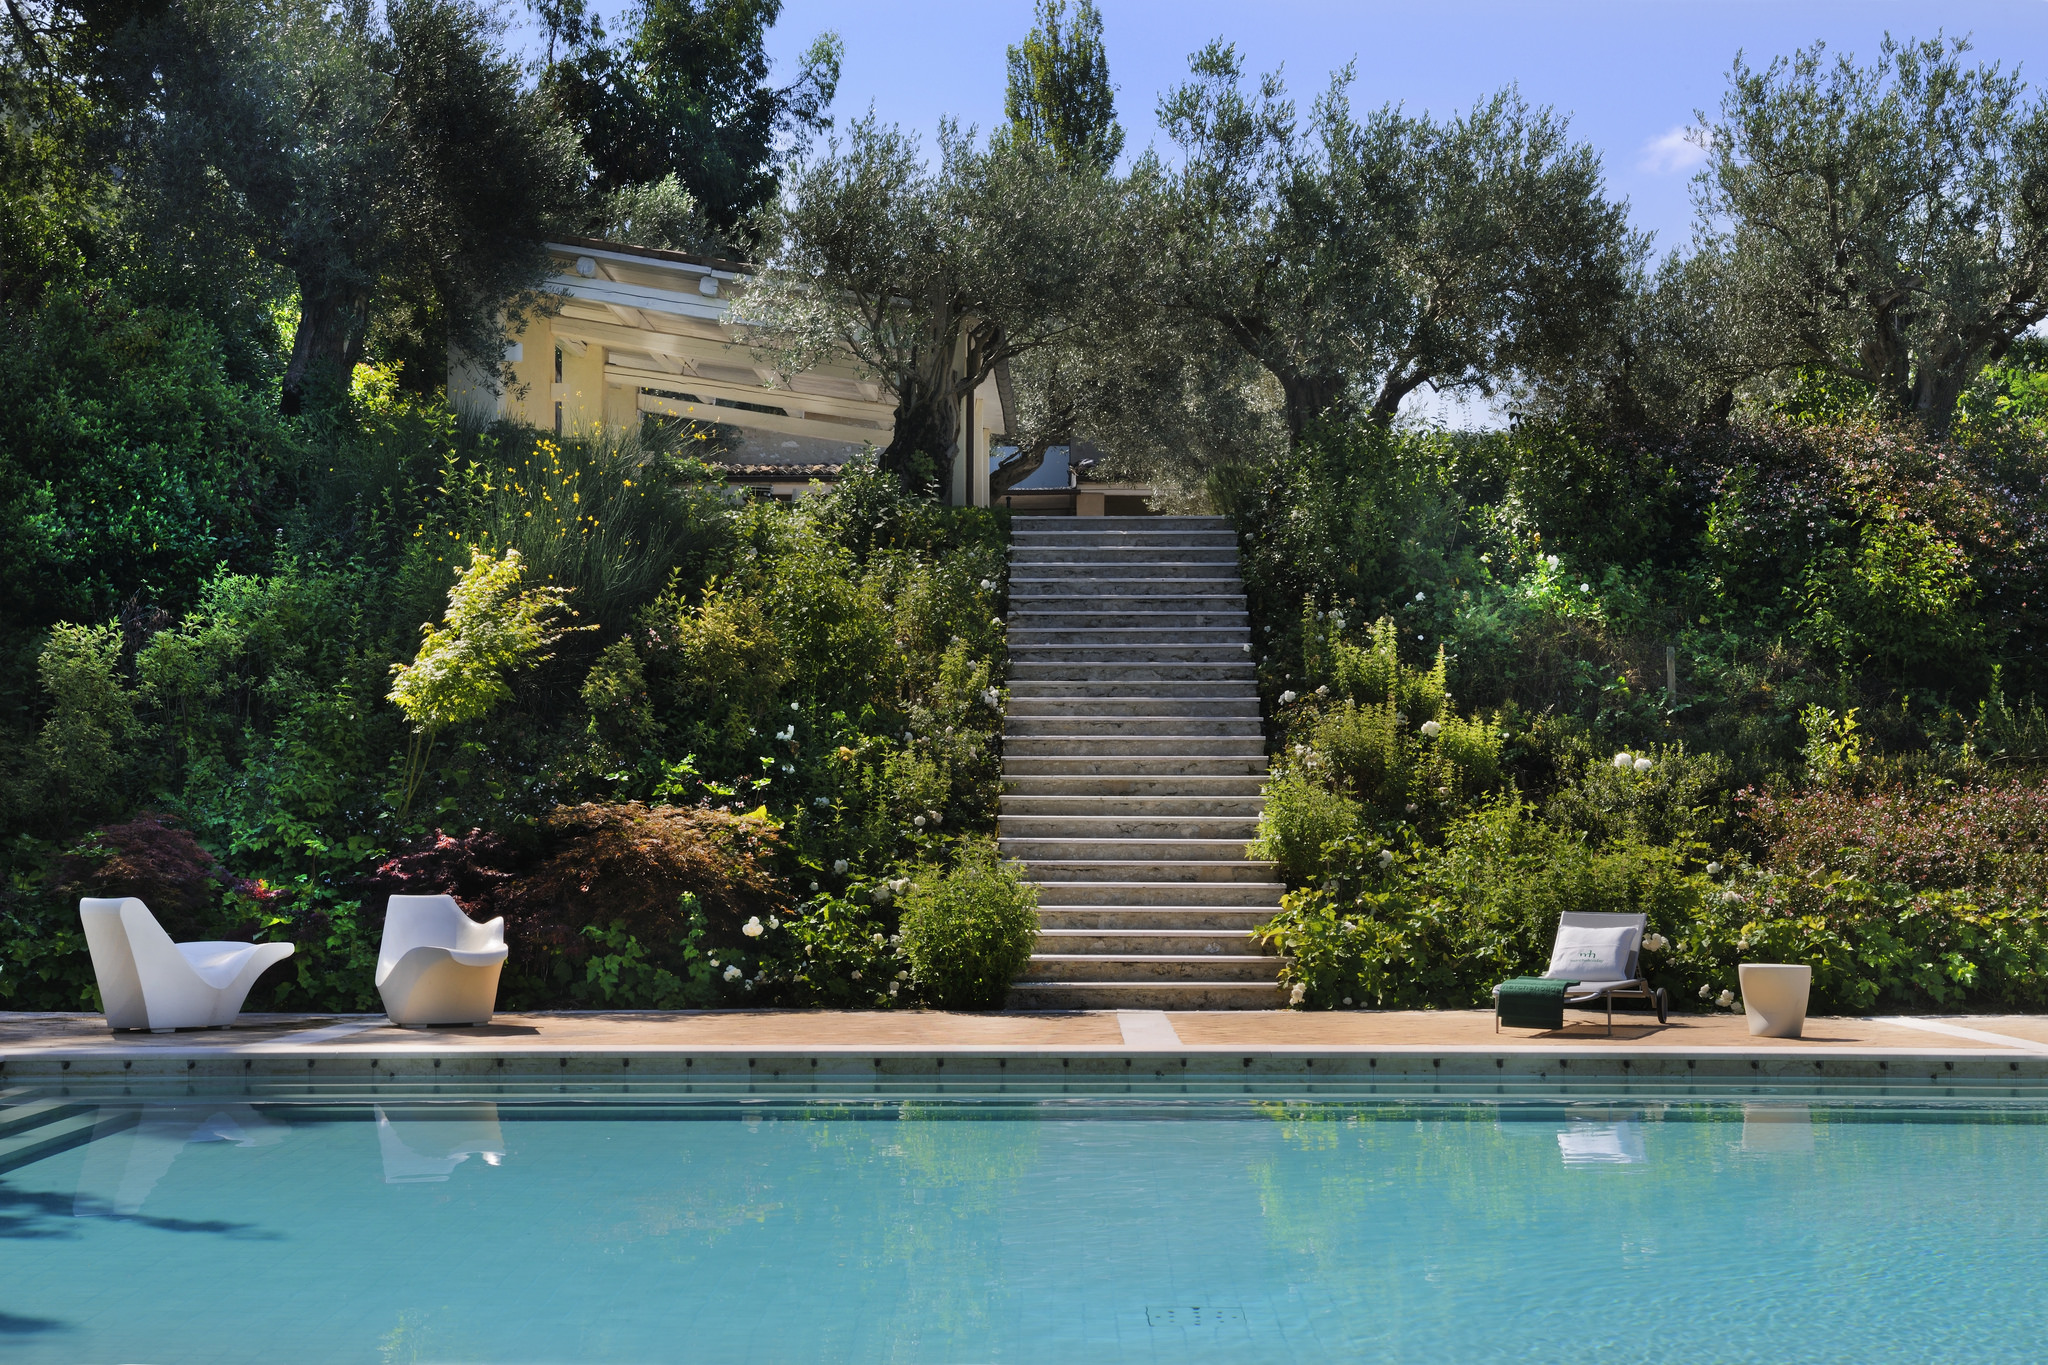 Villa Barcaglione – A luxury Villa in the middle of the vineyards